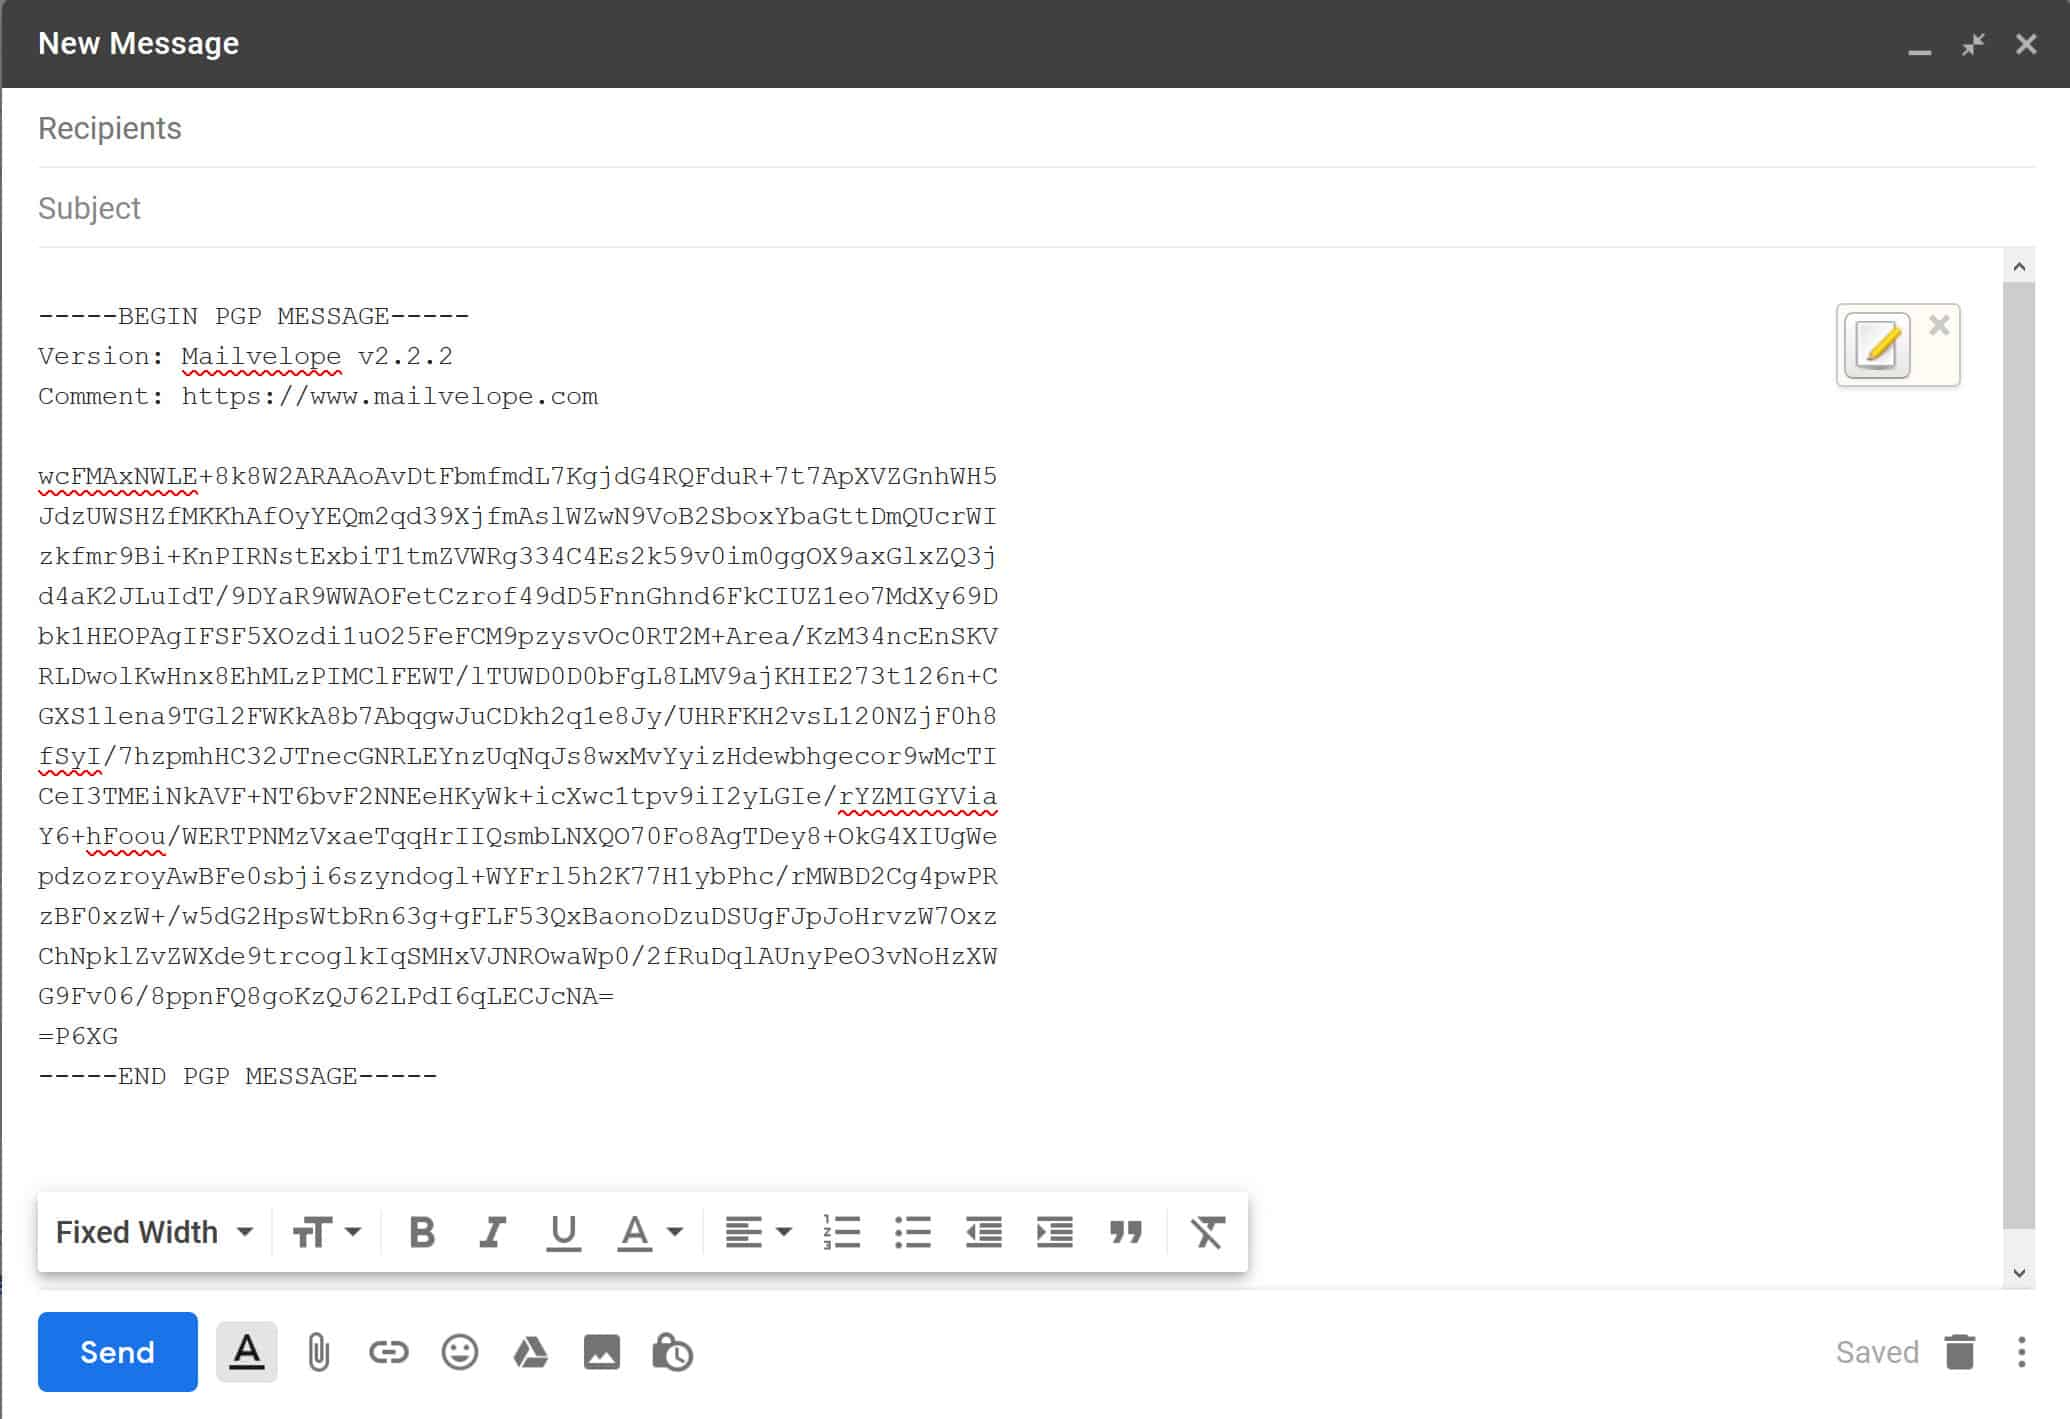 How to use PGP encryption with Gmail using Mailvelope or